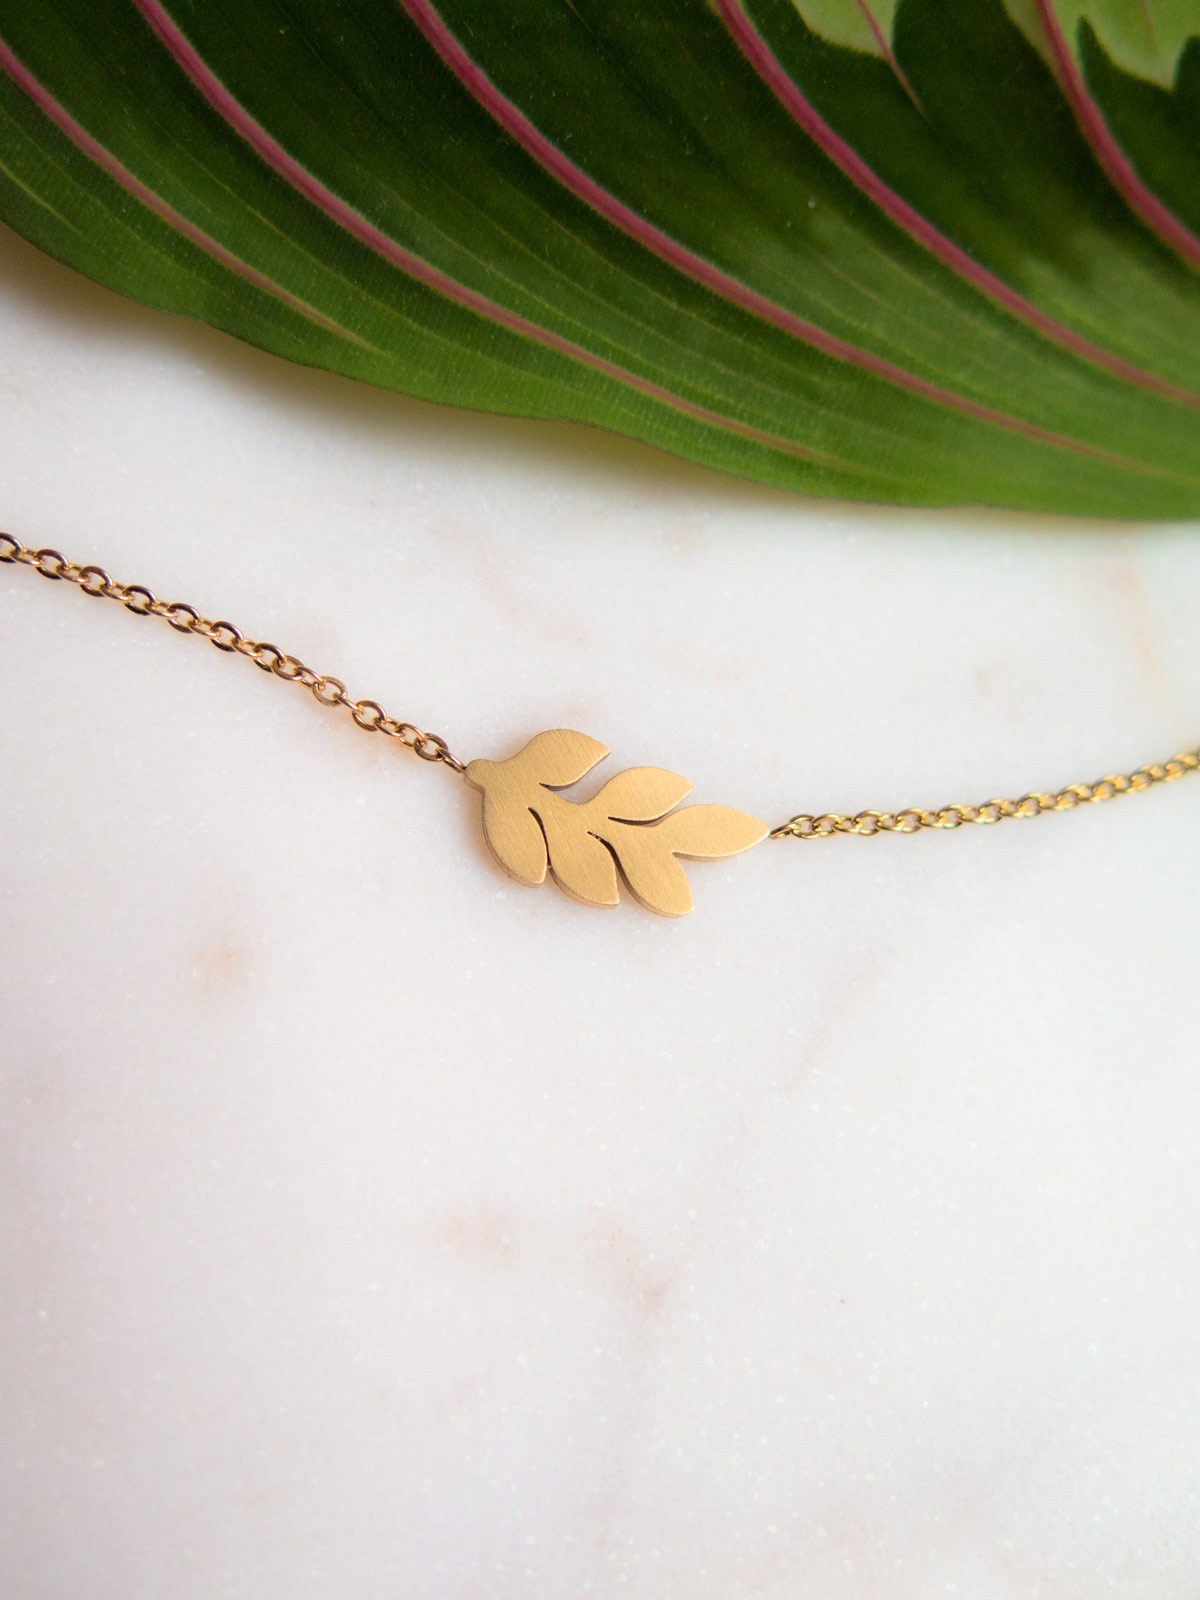 Branch with leaves necklace gold